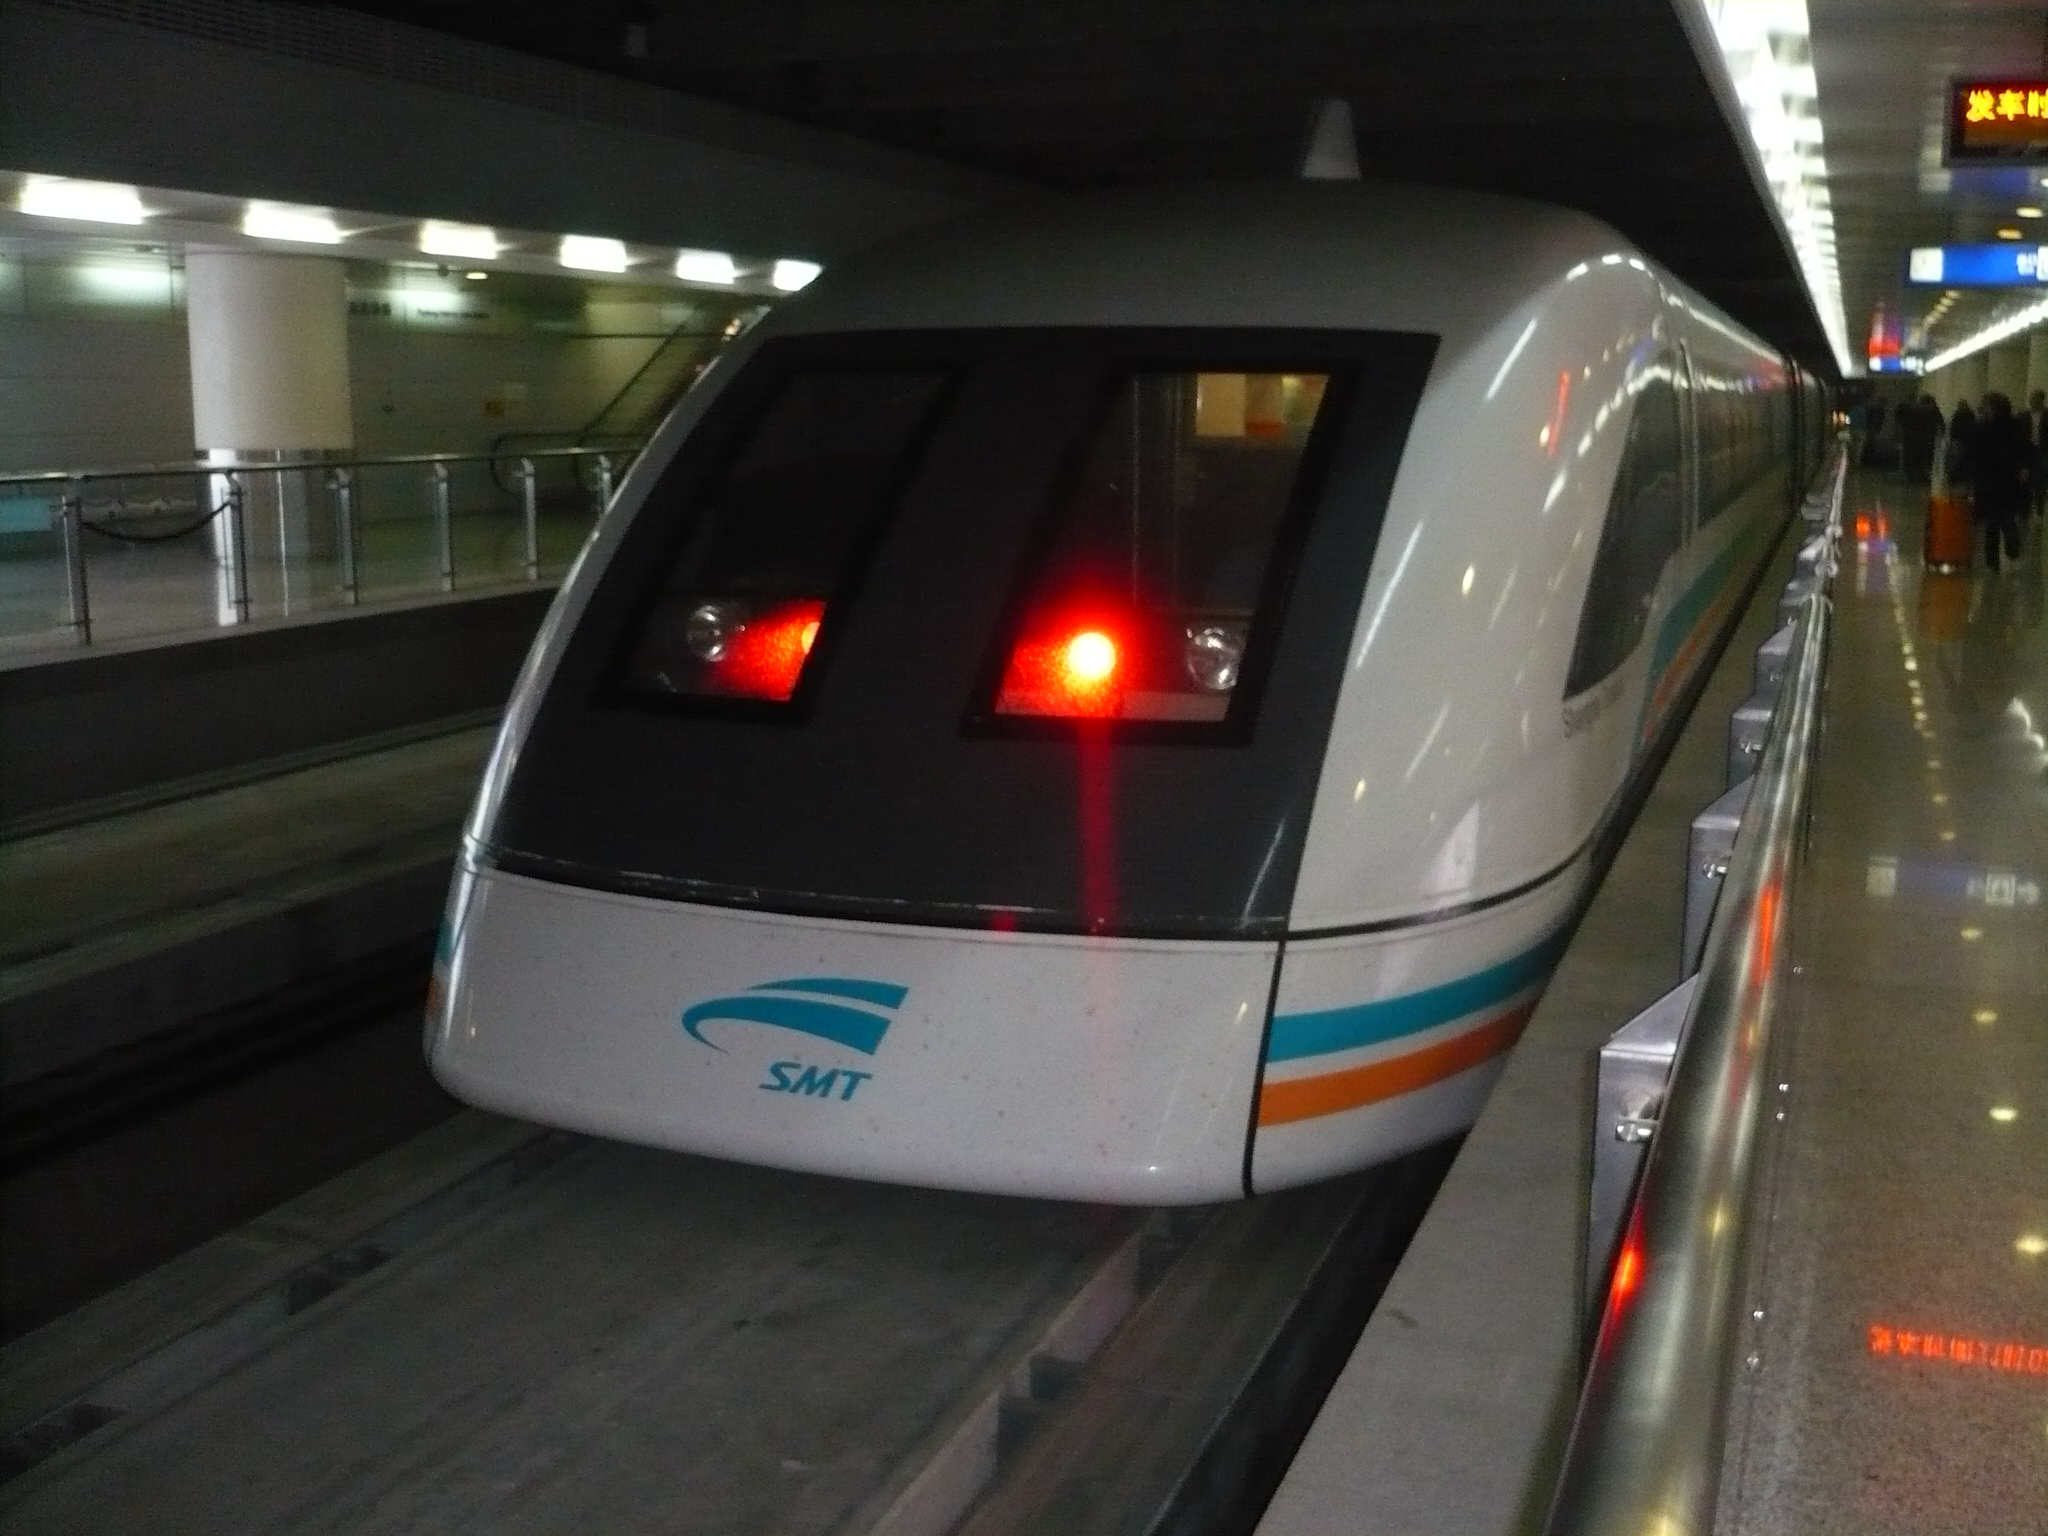 The Maglev - Magnetic Levitation Train to Shanghai airport